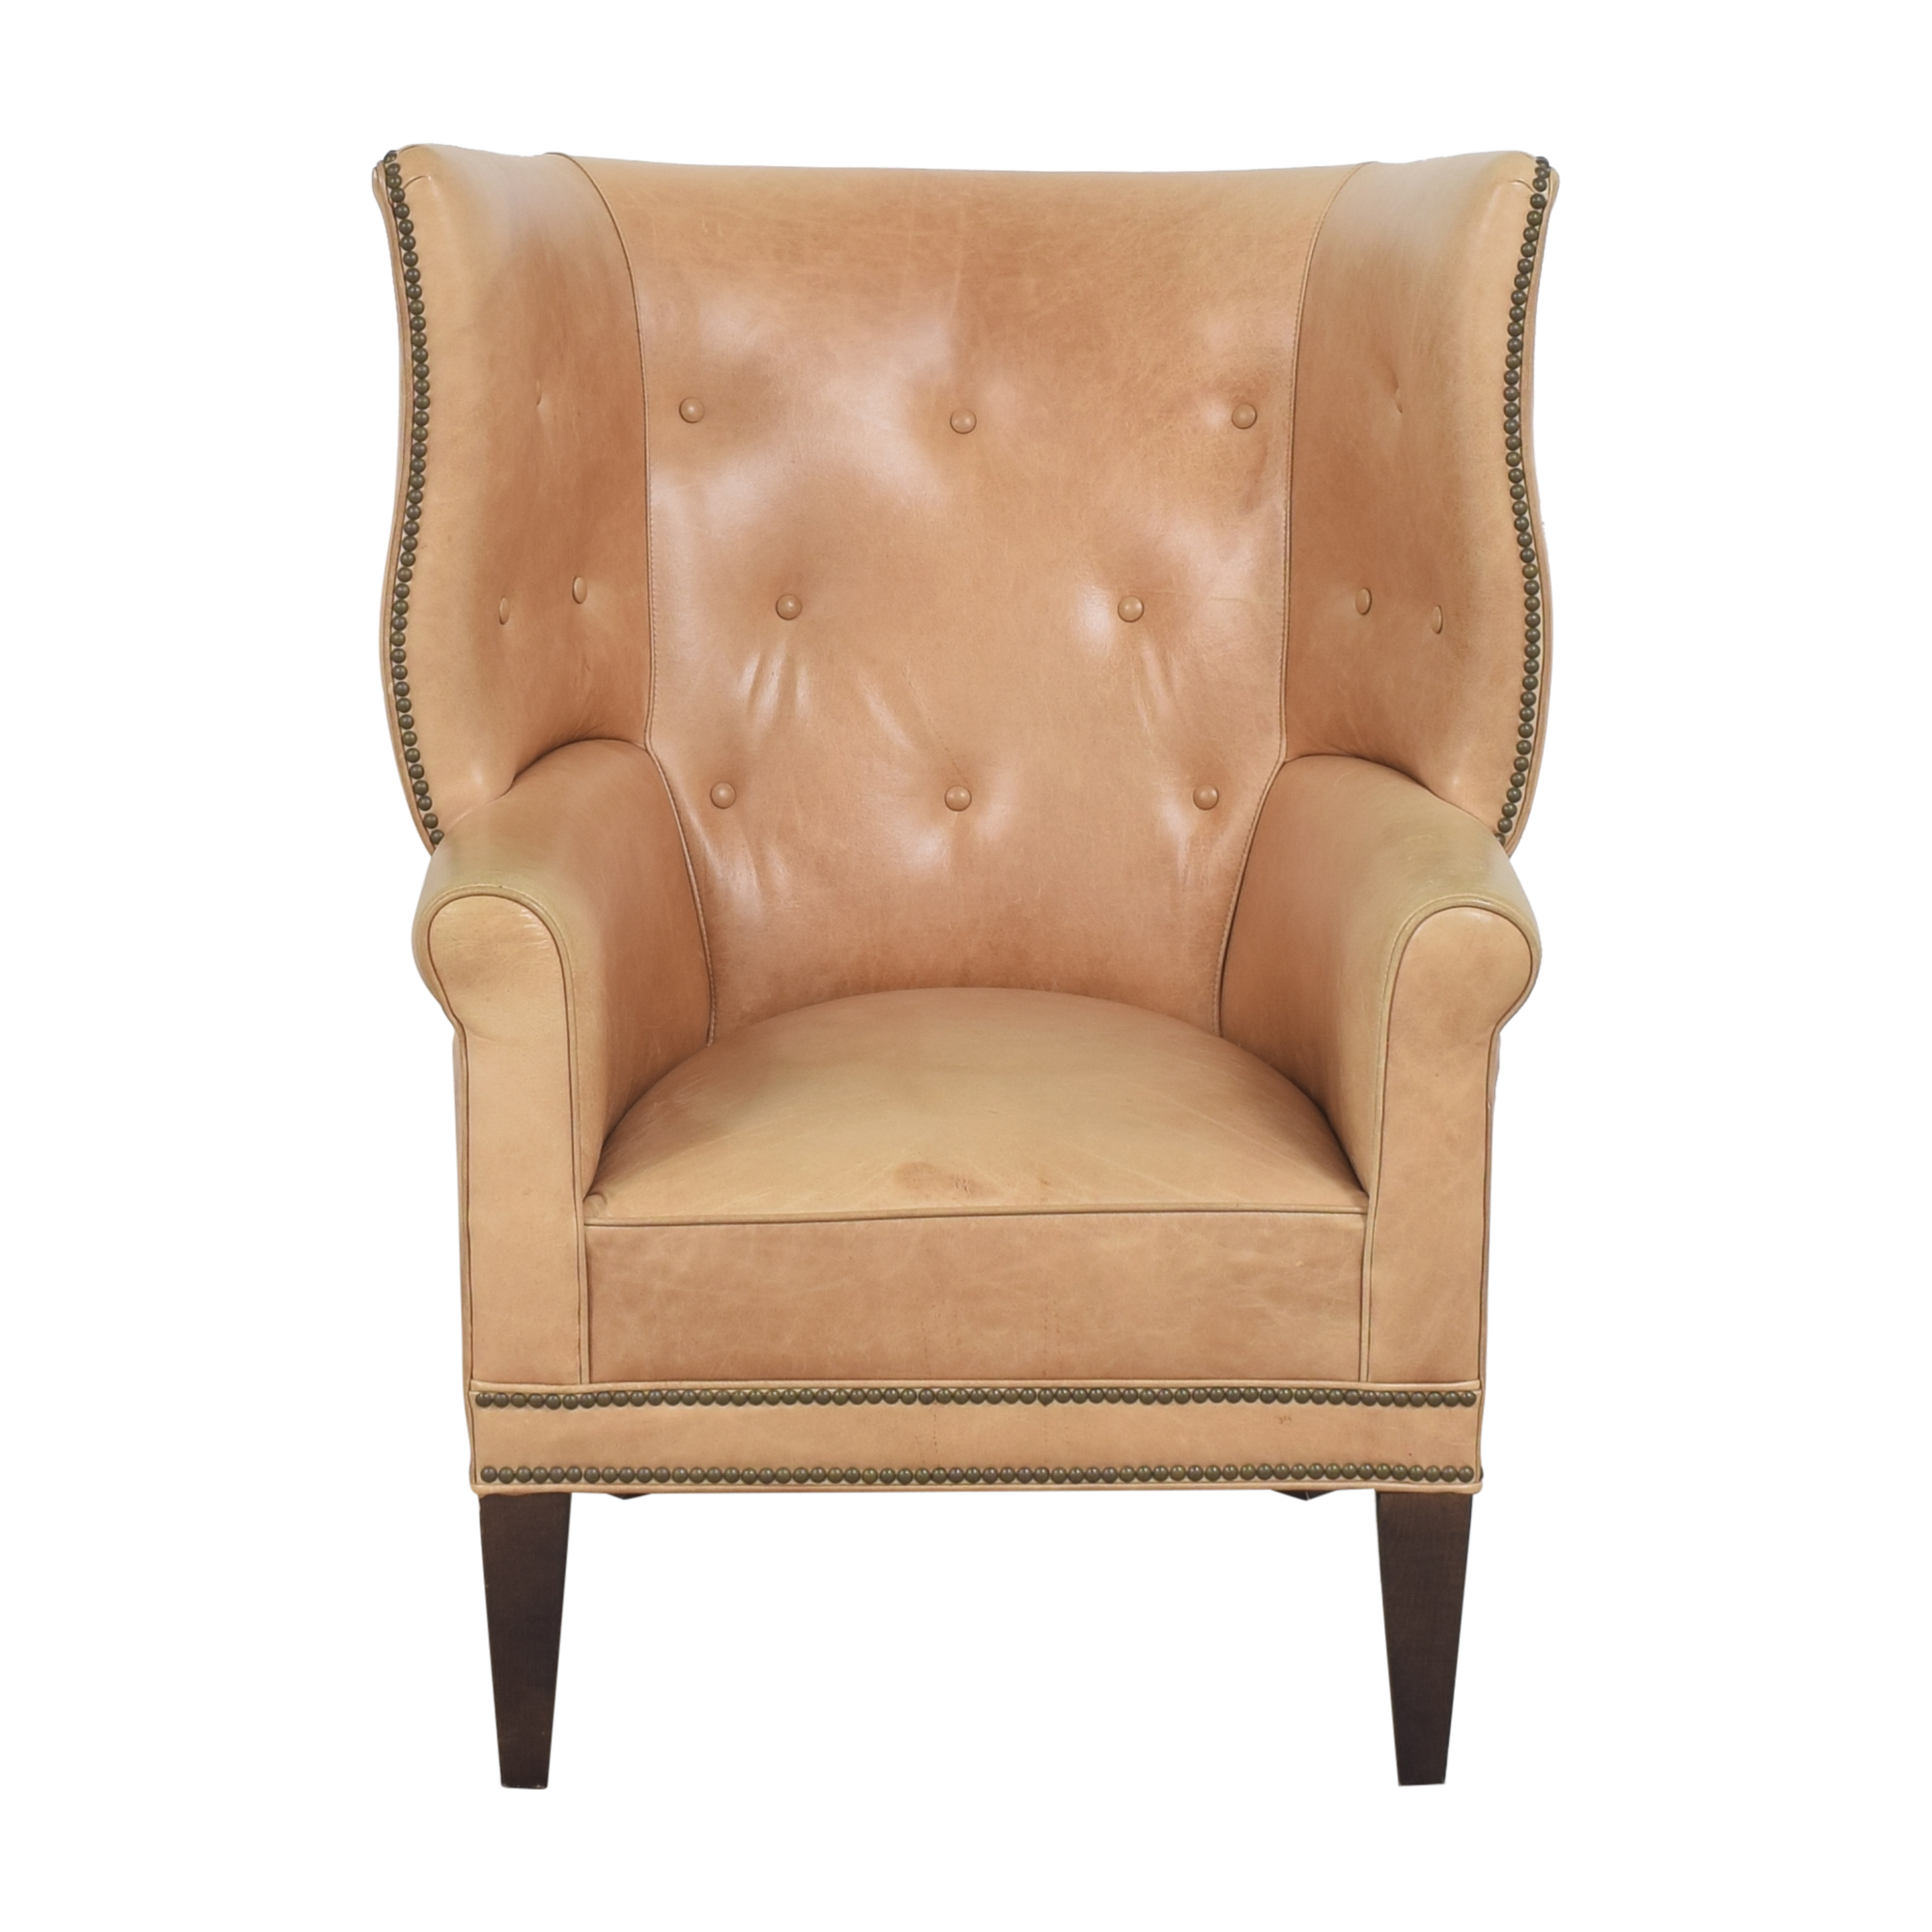 Mitchell Gold + Bob Williams Mitchell Gold + Bob Williams Wing Back Accent Chair on sale